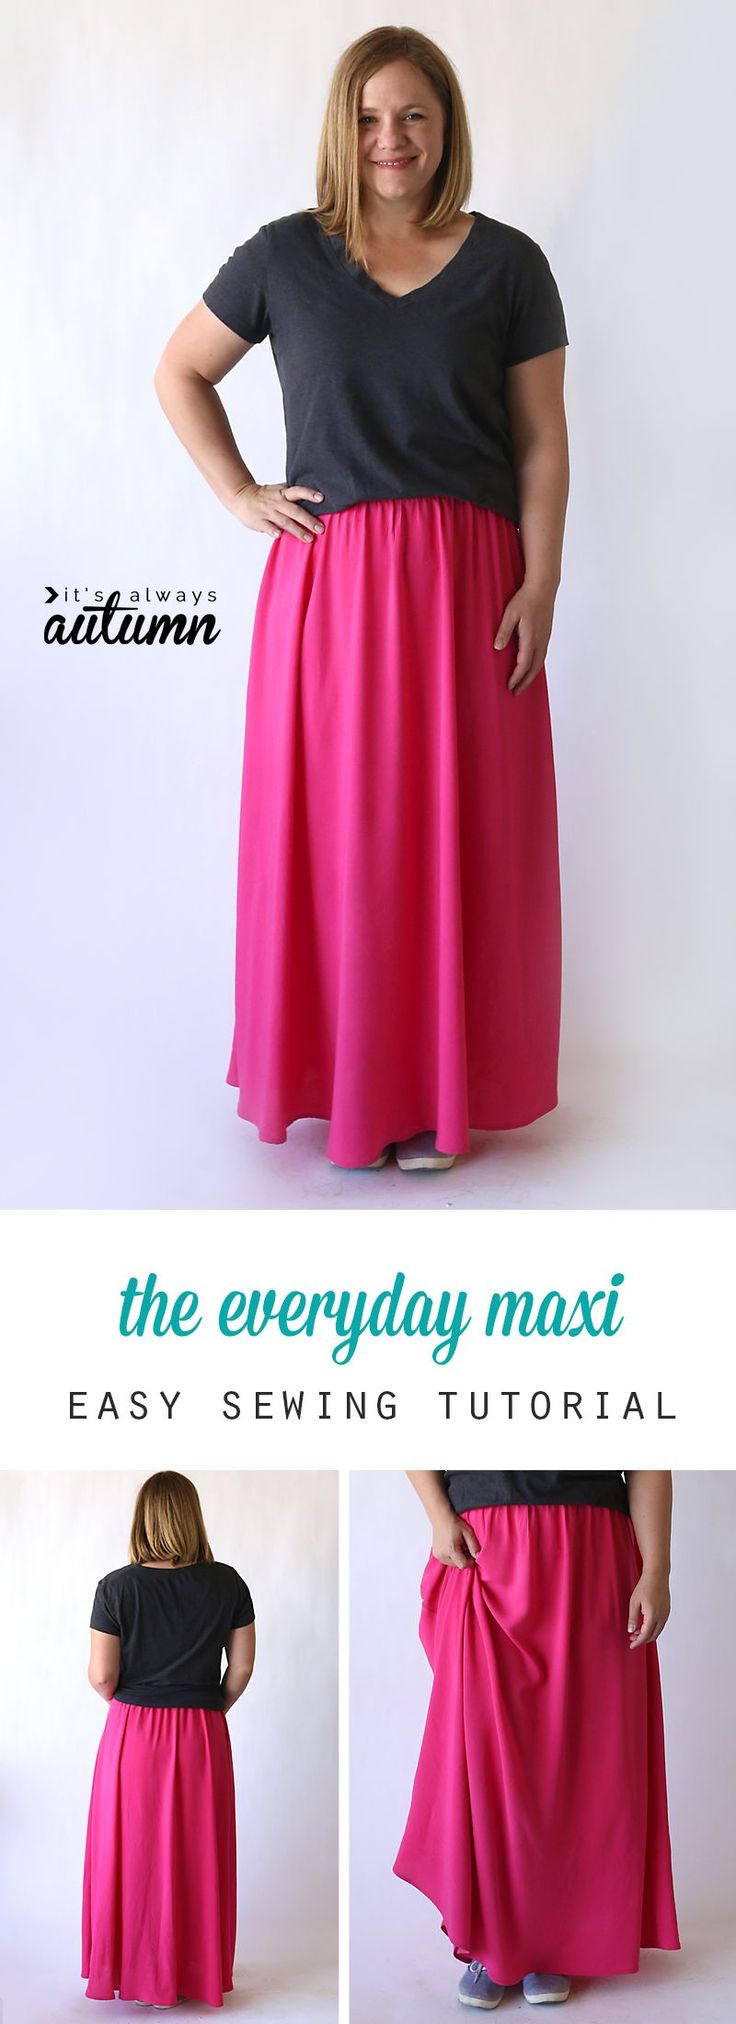 25 best ideas about maxi skirt tutorial on